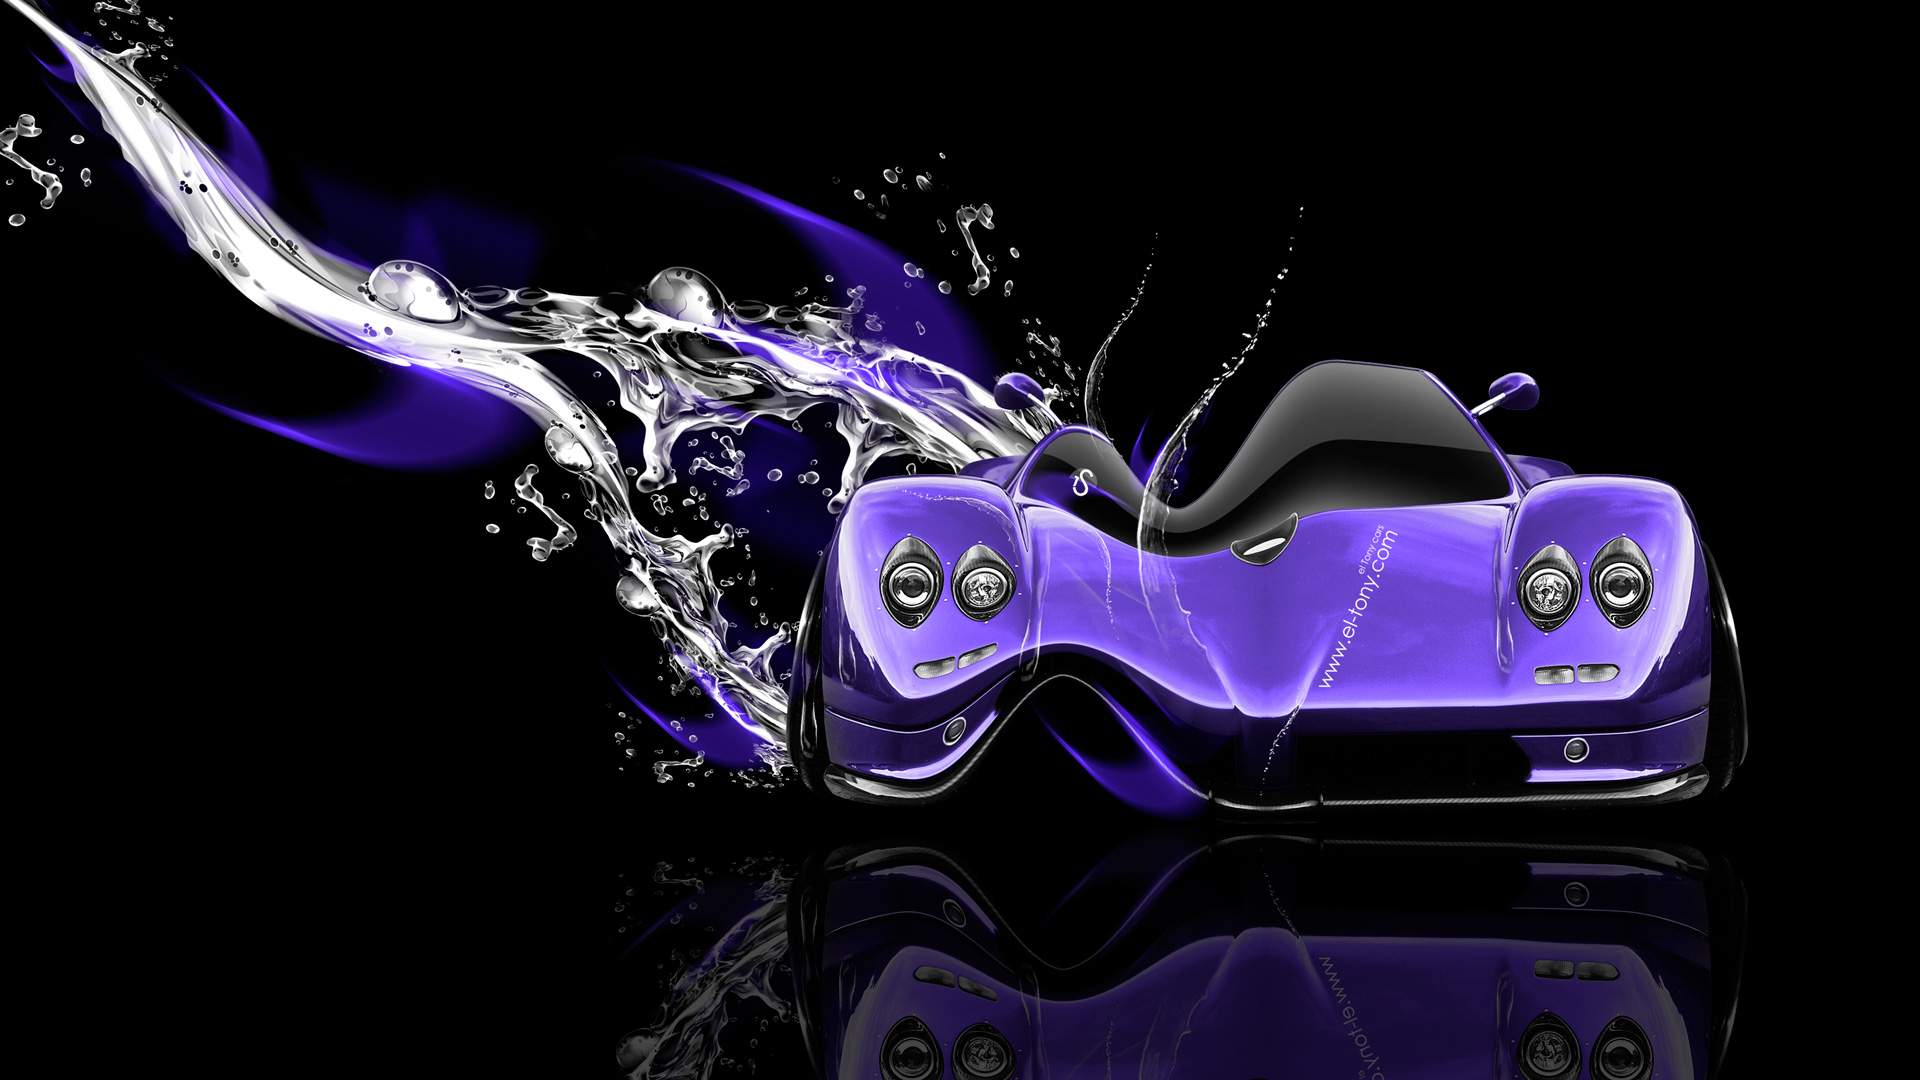 Pagani-Zonda-C12-Fantasy-Water-Plastic-Car-2014-Photoshop-Art-Violet-Neon-HD-Wallpapers-design-by-Tony-Kokhan-[www.el-tony.com]